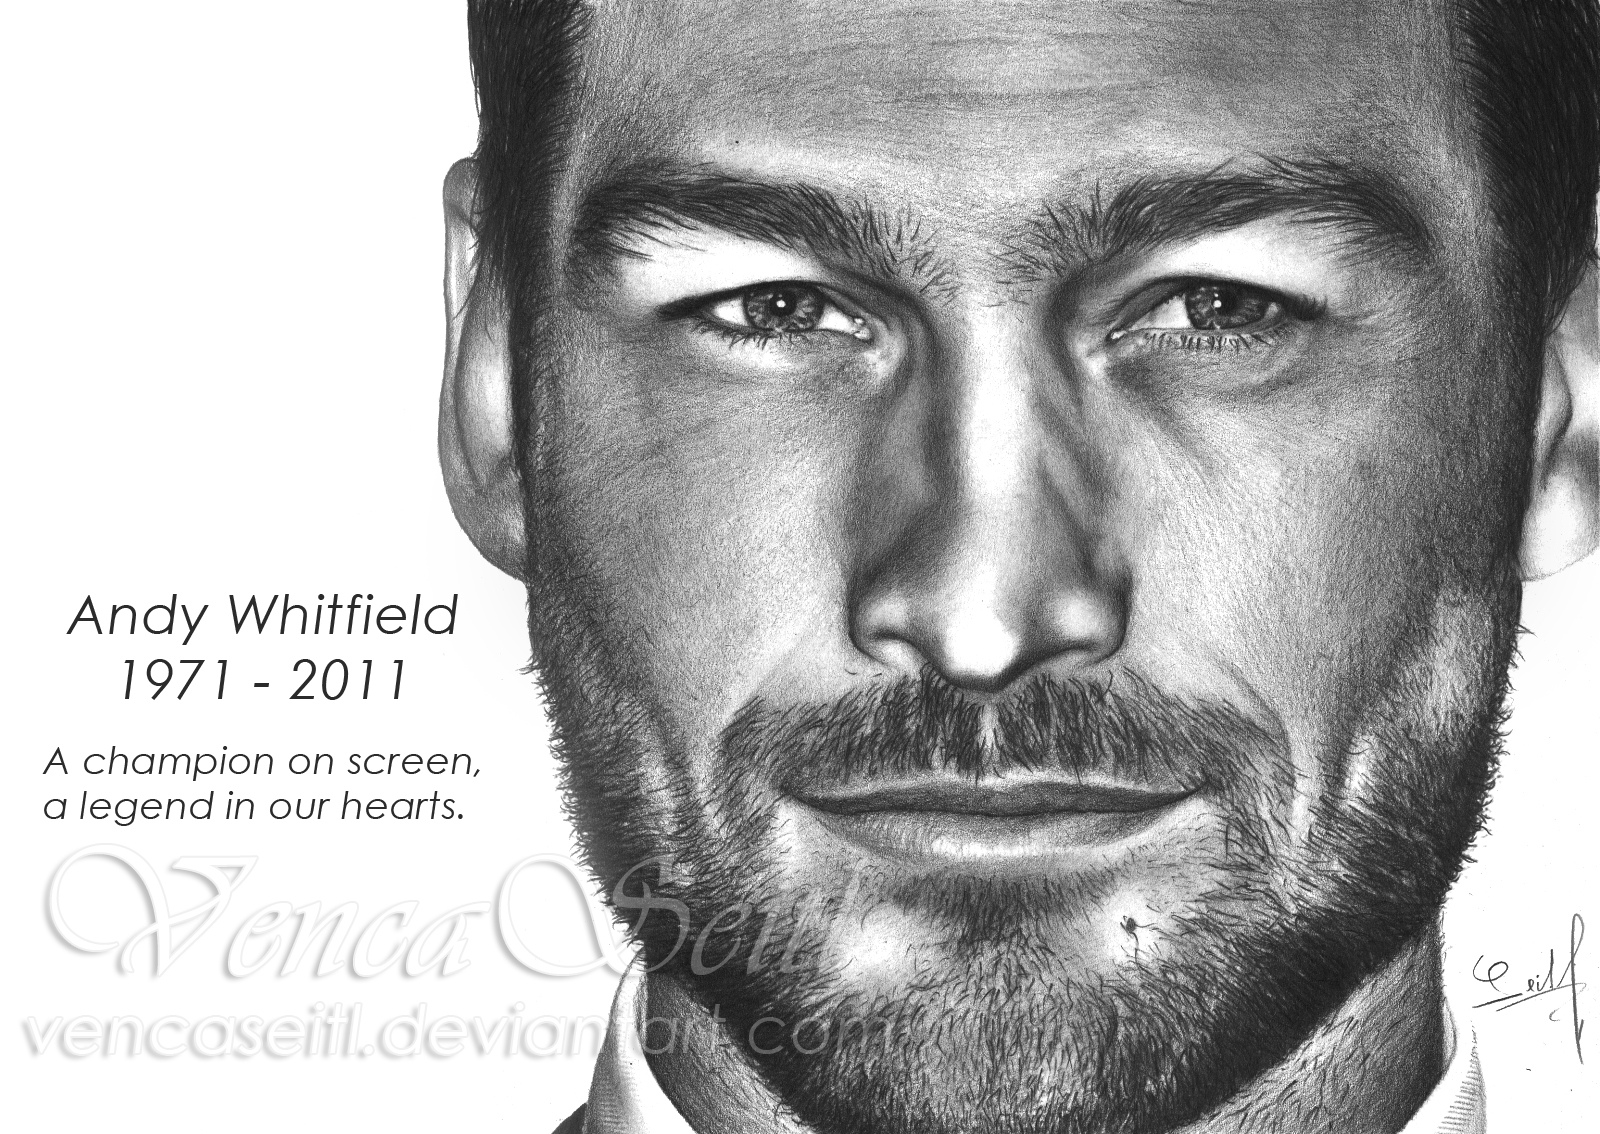 andy whitfield actorandy whitfield death, andy whitfield wife, andy whitfield cancer, andy whitfield spartacus, andy whitfield height, andy whitfield workout, andy whitfield age, andy whitfield movies, andy whitfield funeral, andy whitfield family, andy whitfield and liam mcintyre, andy whitfield birthday, andy whitfield actor, andy whitfield biography, andy whitfield interview, andy whitfield net worth, andy whitfield tribute, andy whitfield documentary, andy whitfield tattoo